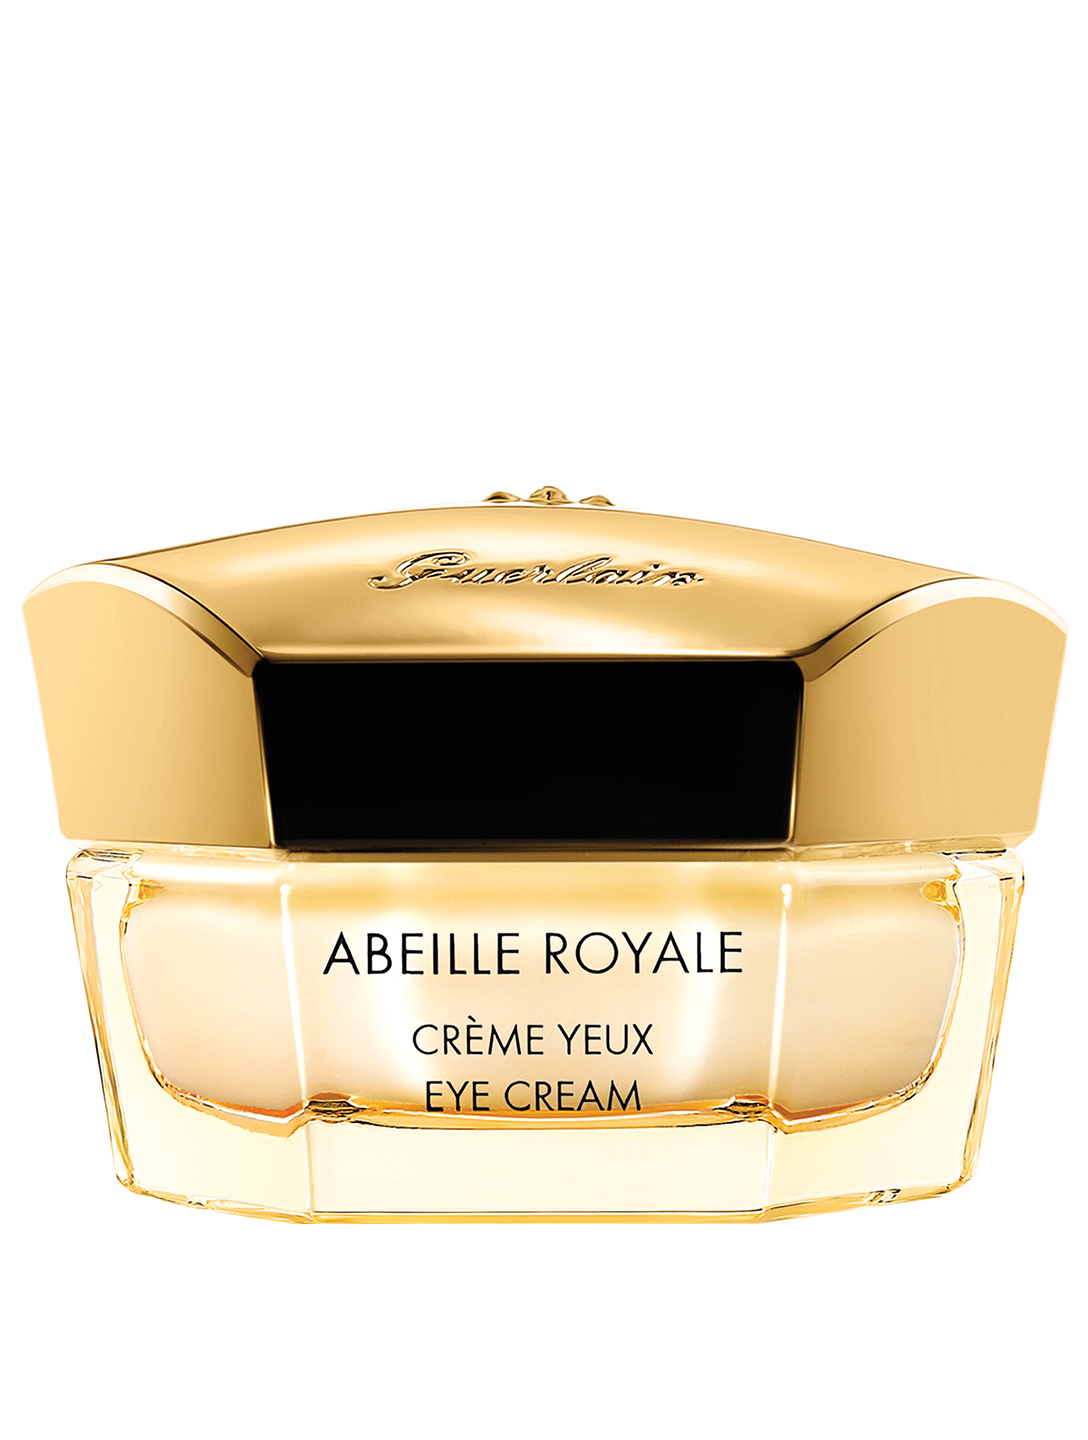 GUERLAIN Abeille Royale Replenishing Eye Cream Beauty